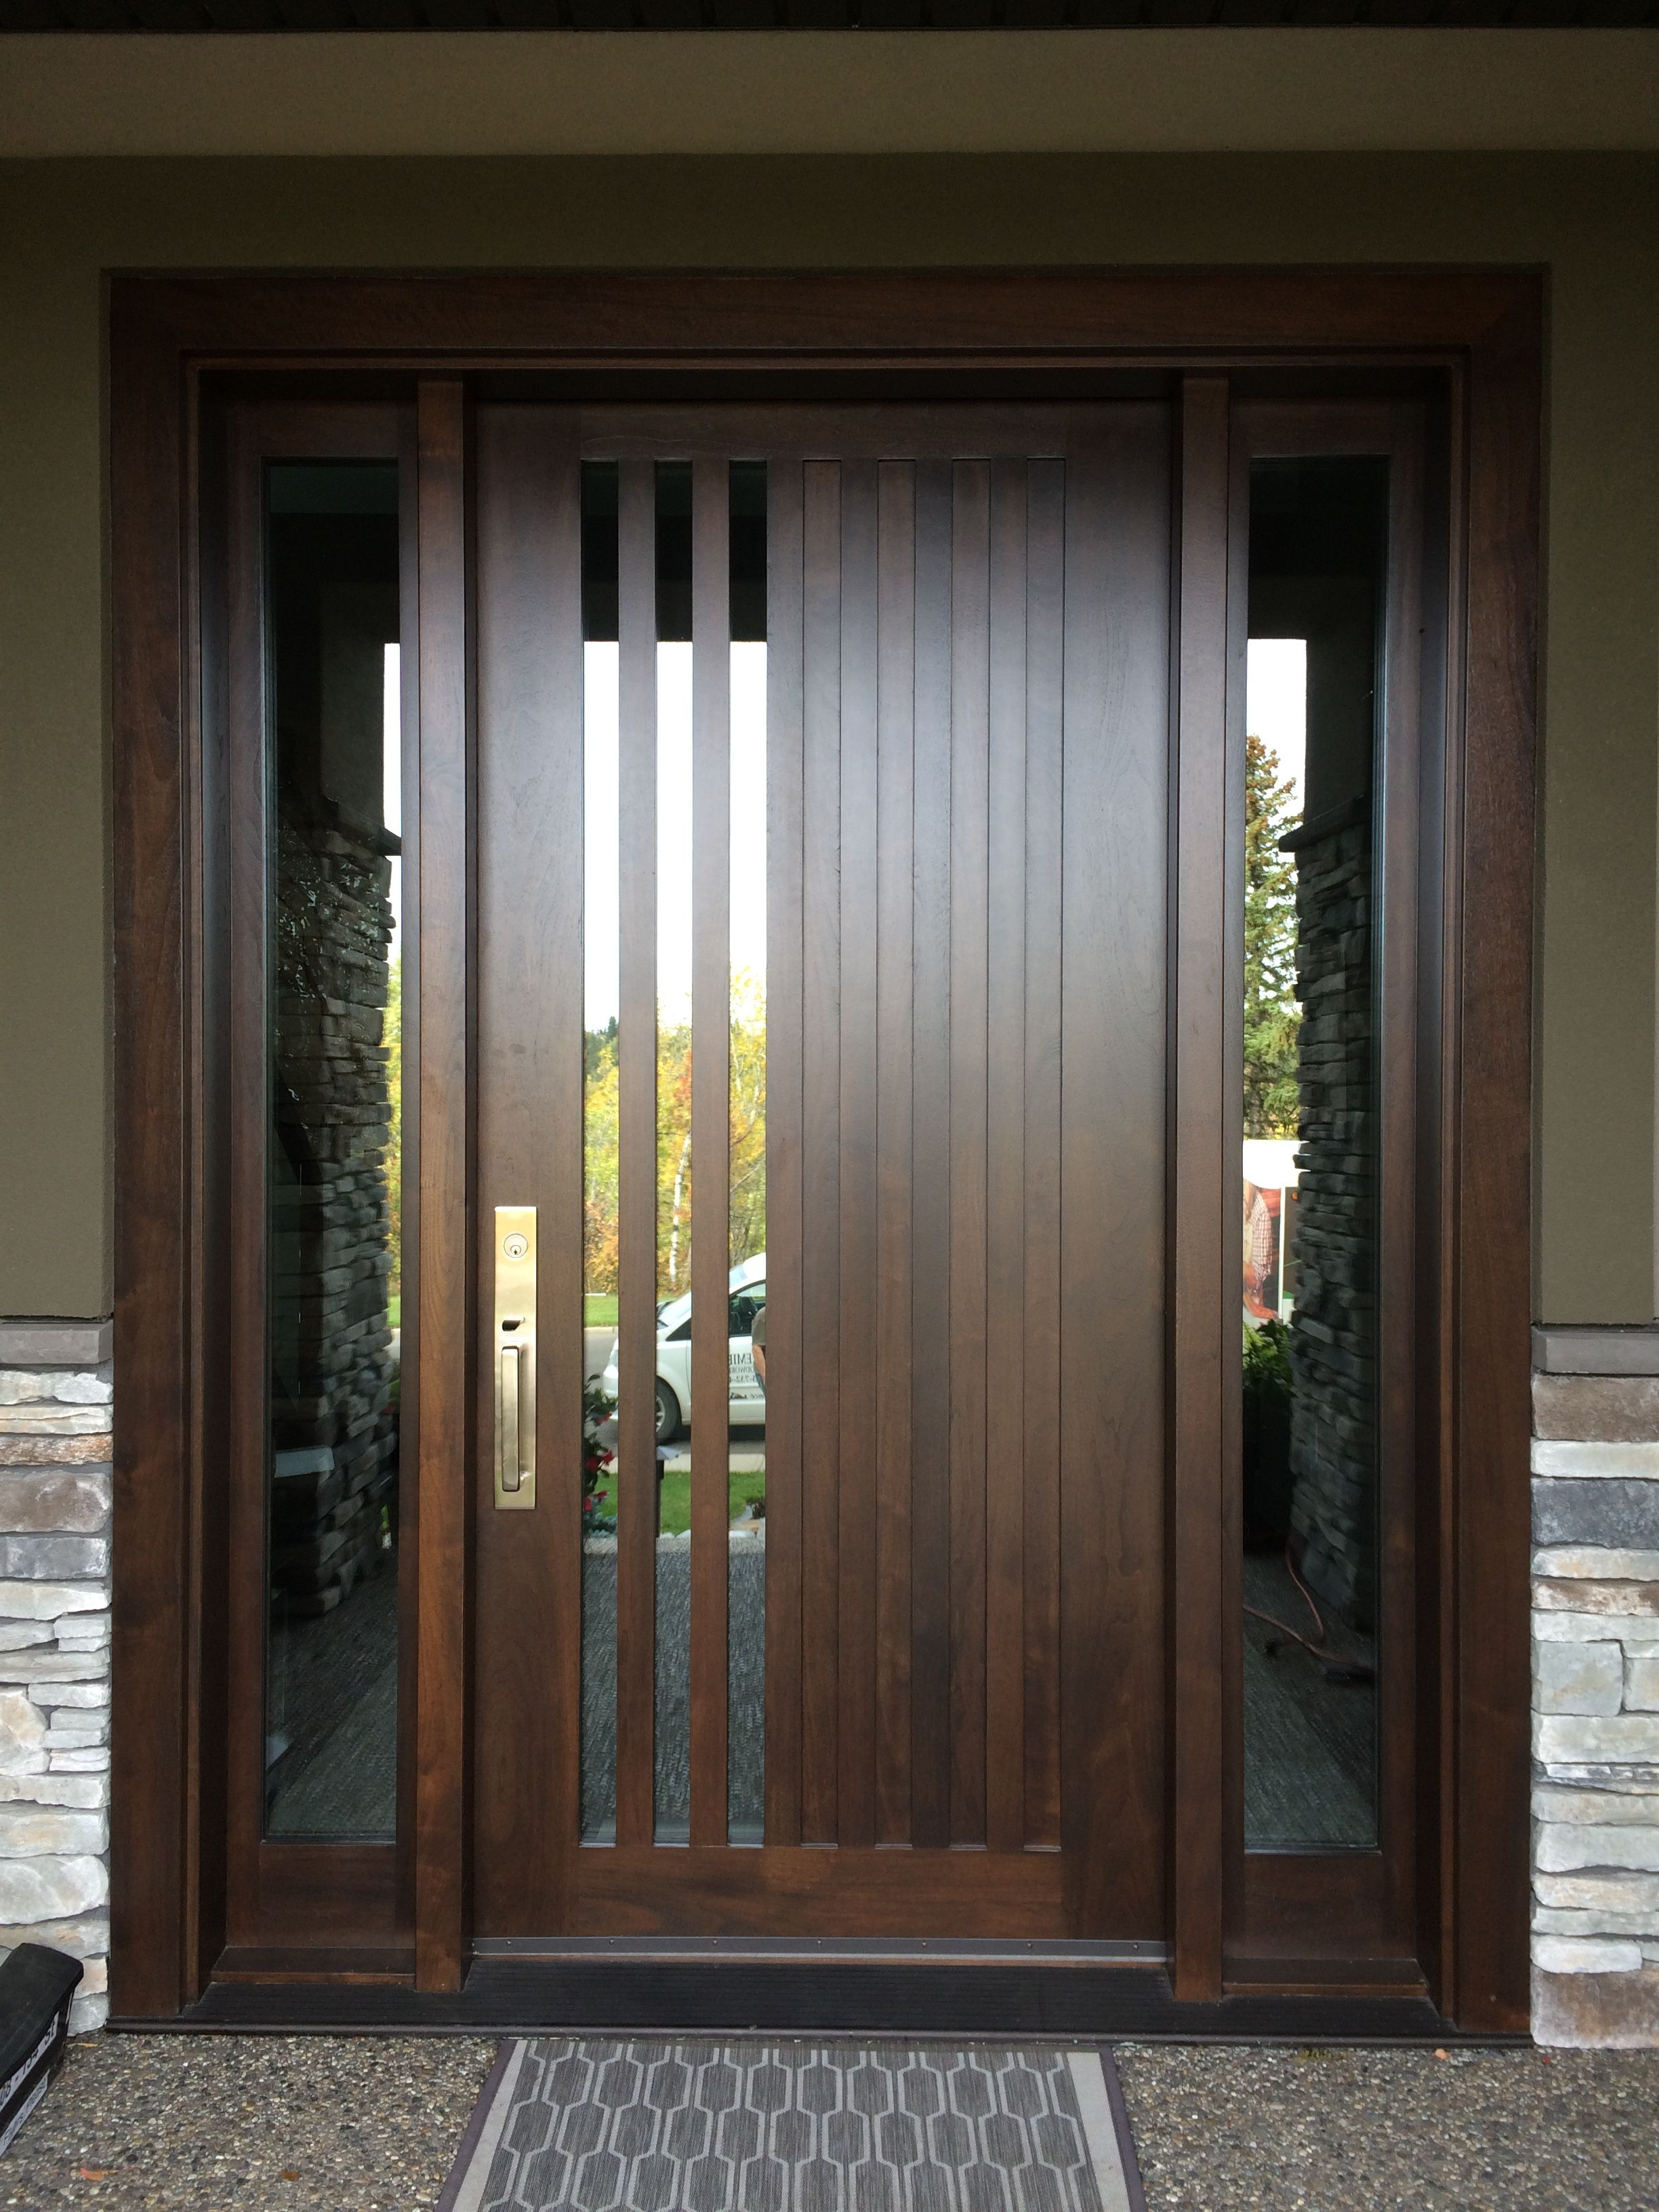 Create the design of your barndominium door or you may also let barndominiumfloorplans provide models for  wooden with  february at pm interior doors rh pinterest